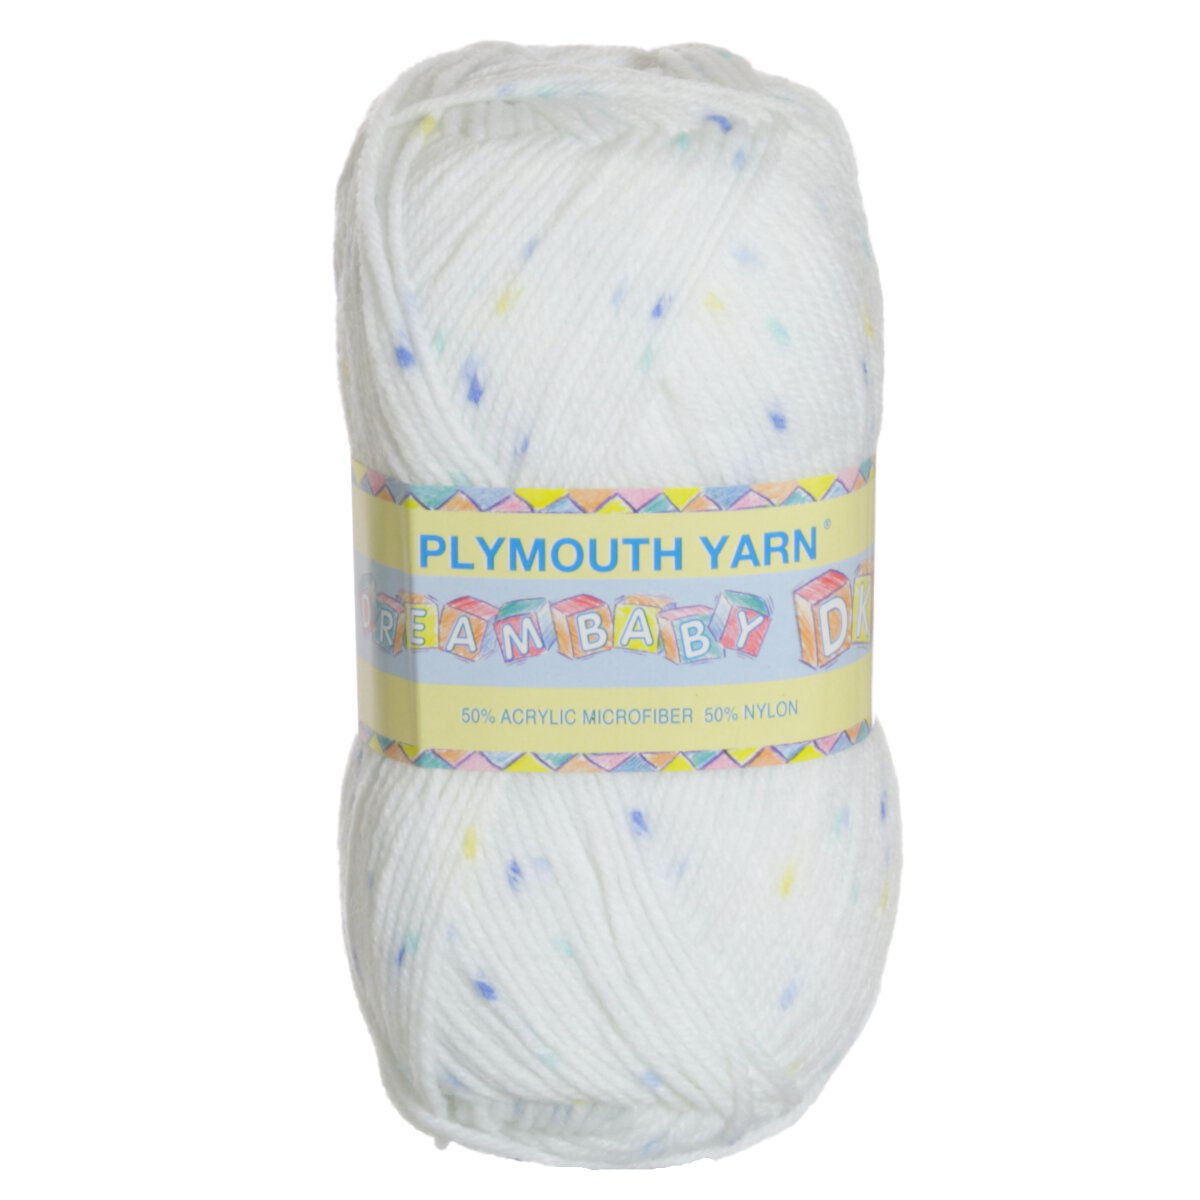 Plymouth Yarn Dreambaby DK Yarn 302 White With Boy Spots